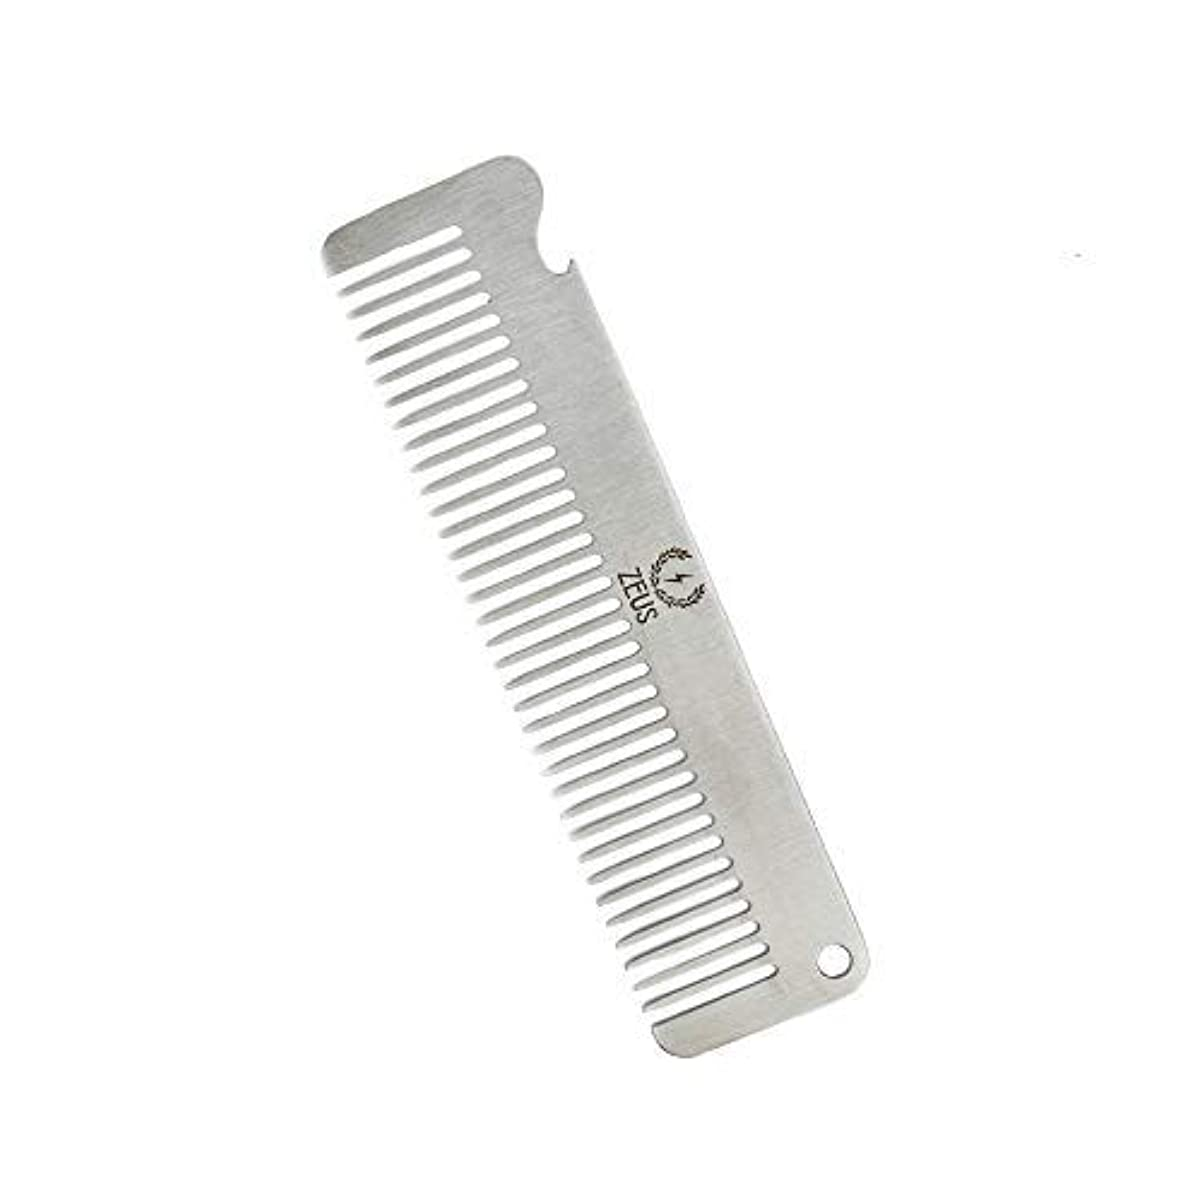 バルーン選択する残高ZEUS Stainless Steel Comb with Bottle Opener - Beard Comb for Men! (Comb) [並行輸入品]